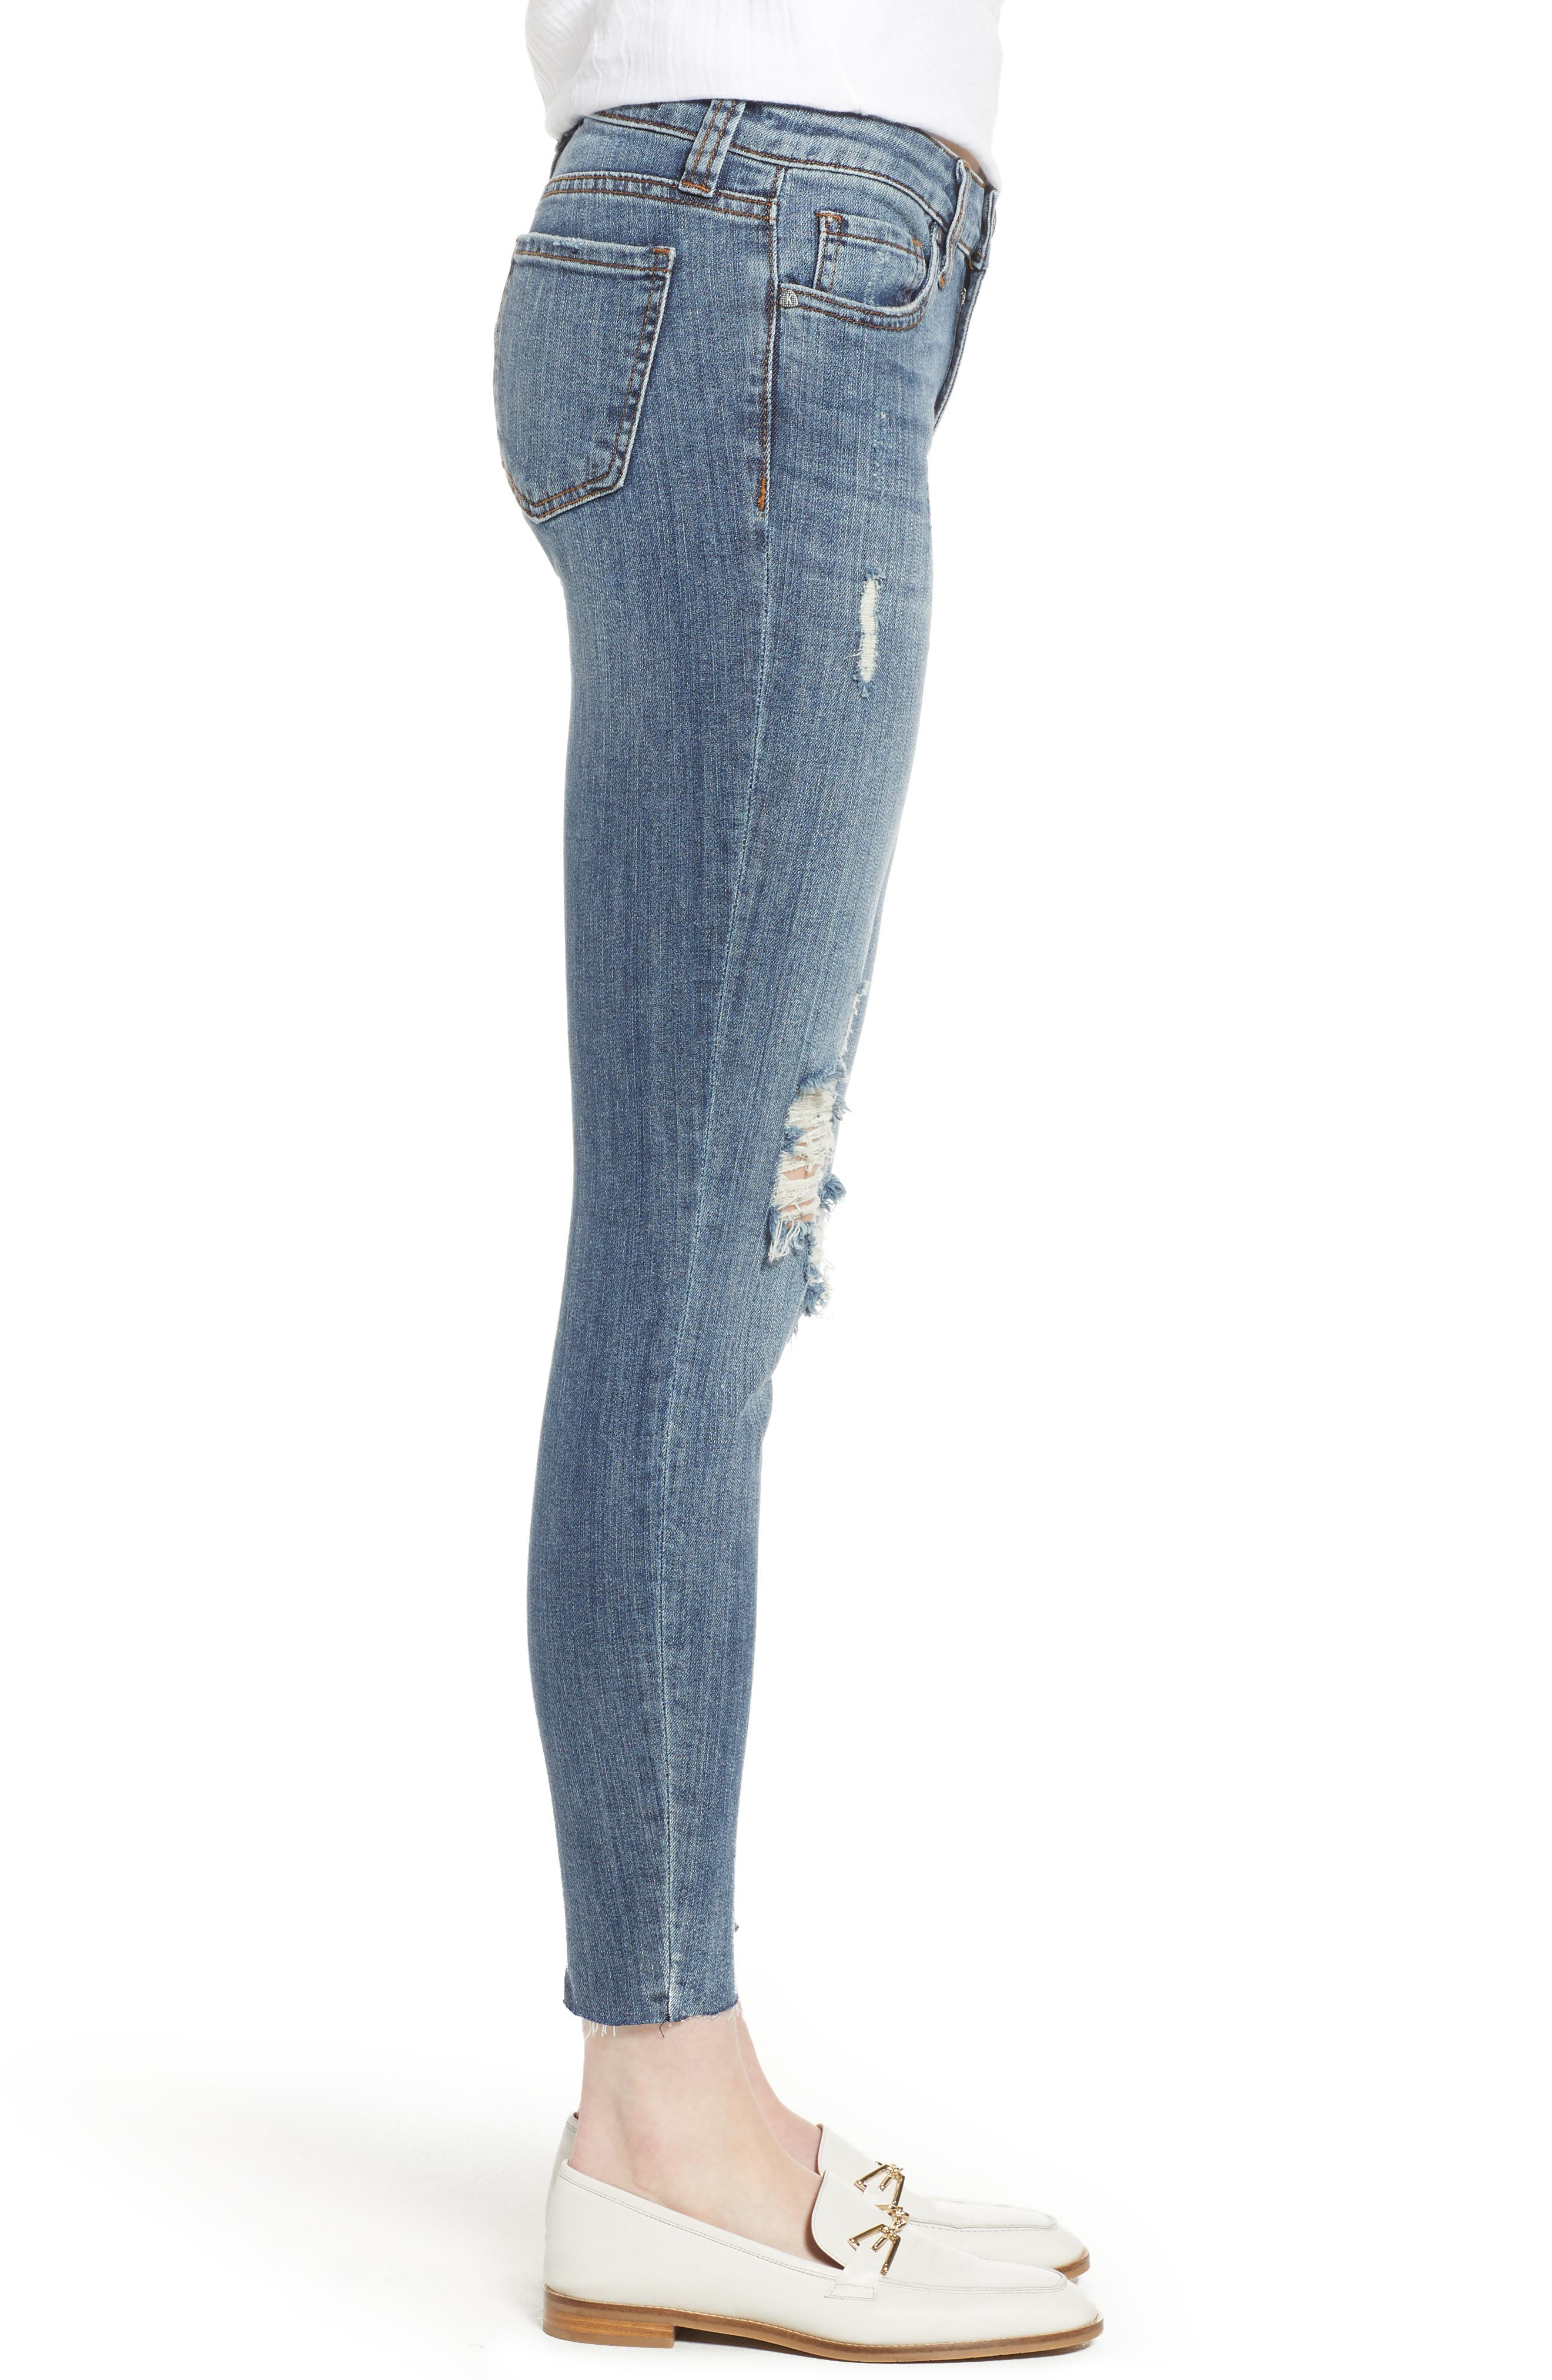 KUT from the Kloth Connie Raw Hem Ankle Jeans,                             Alternate thumbnail 3, color,                             Refinement